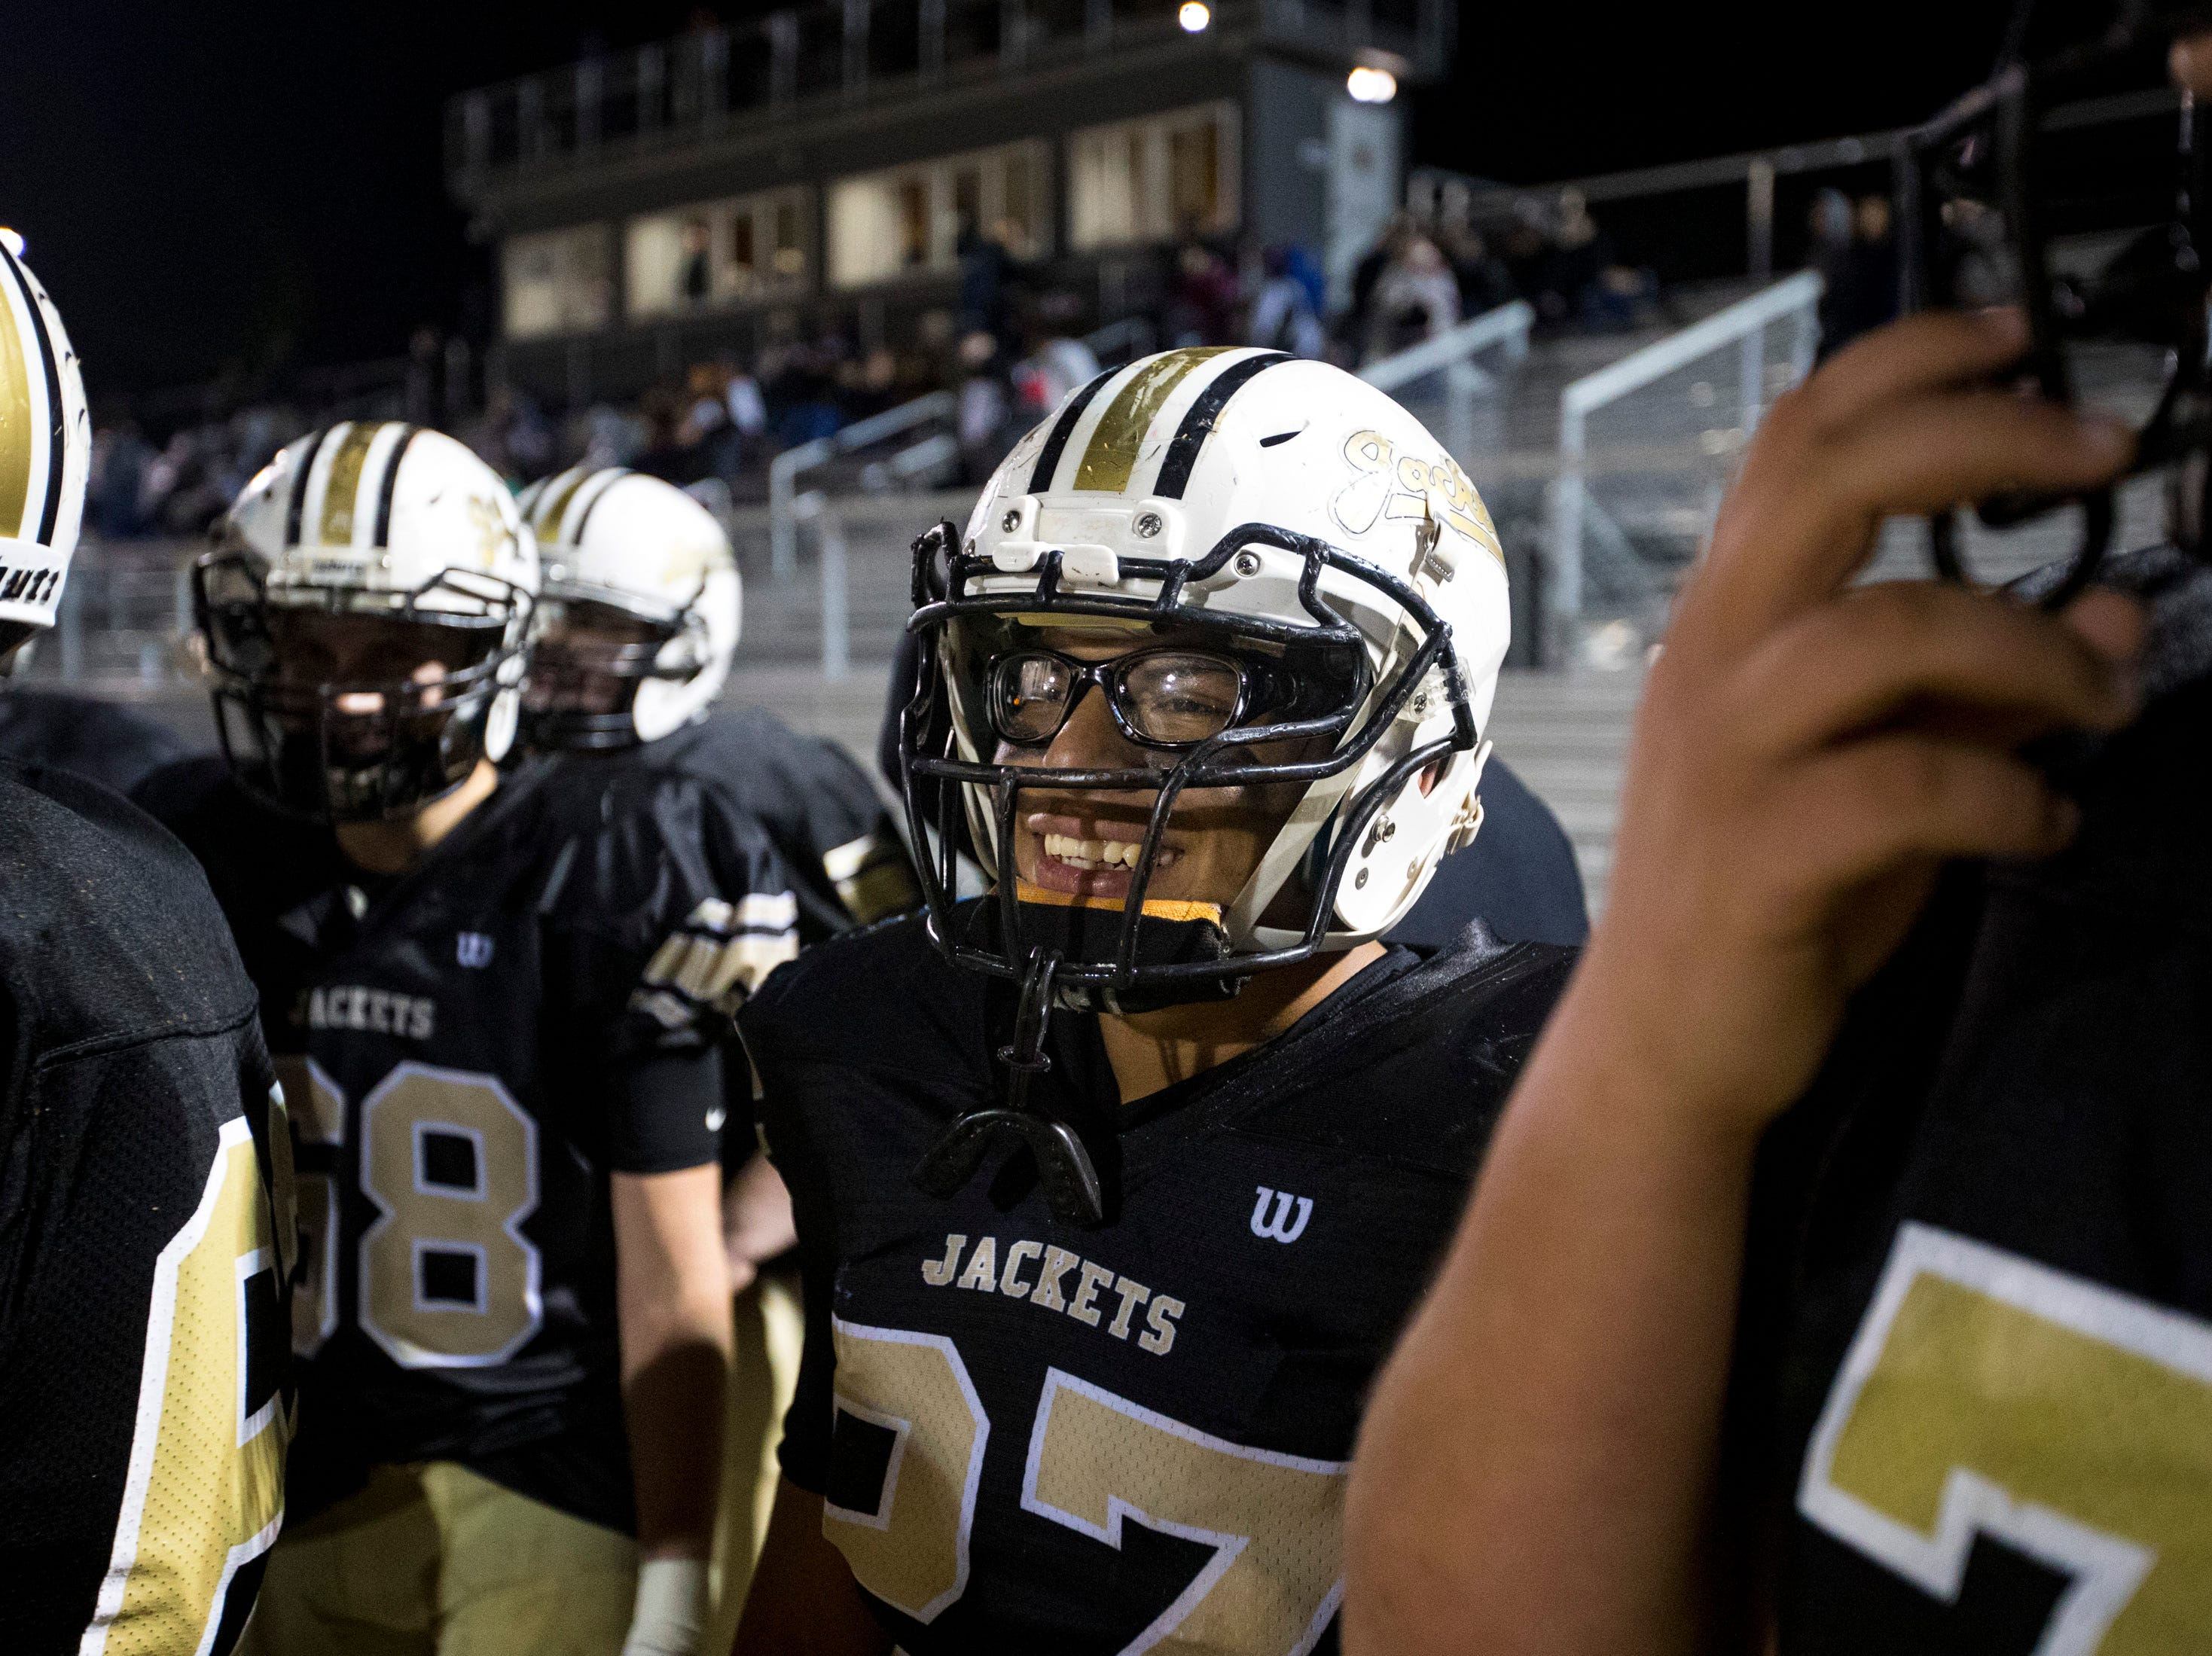 Springfield's Yonel Rodriguez (27) smiles on the sideline during Springfield's game against Chester County at Springfield High School in Springfield on Friday, Nov. 2, 2018.